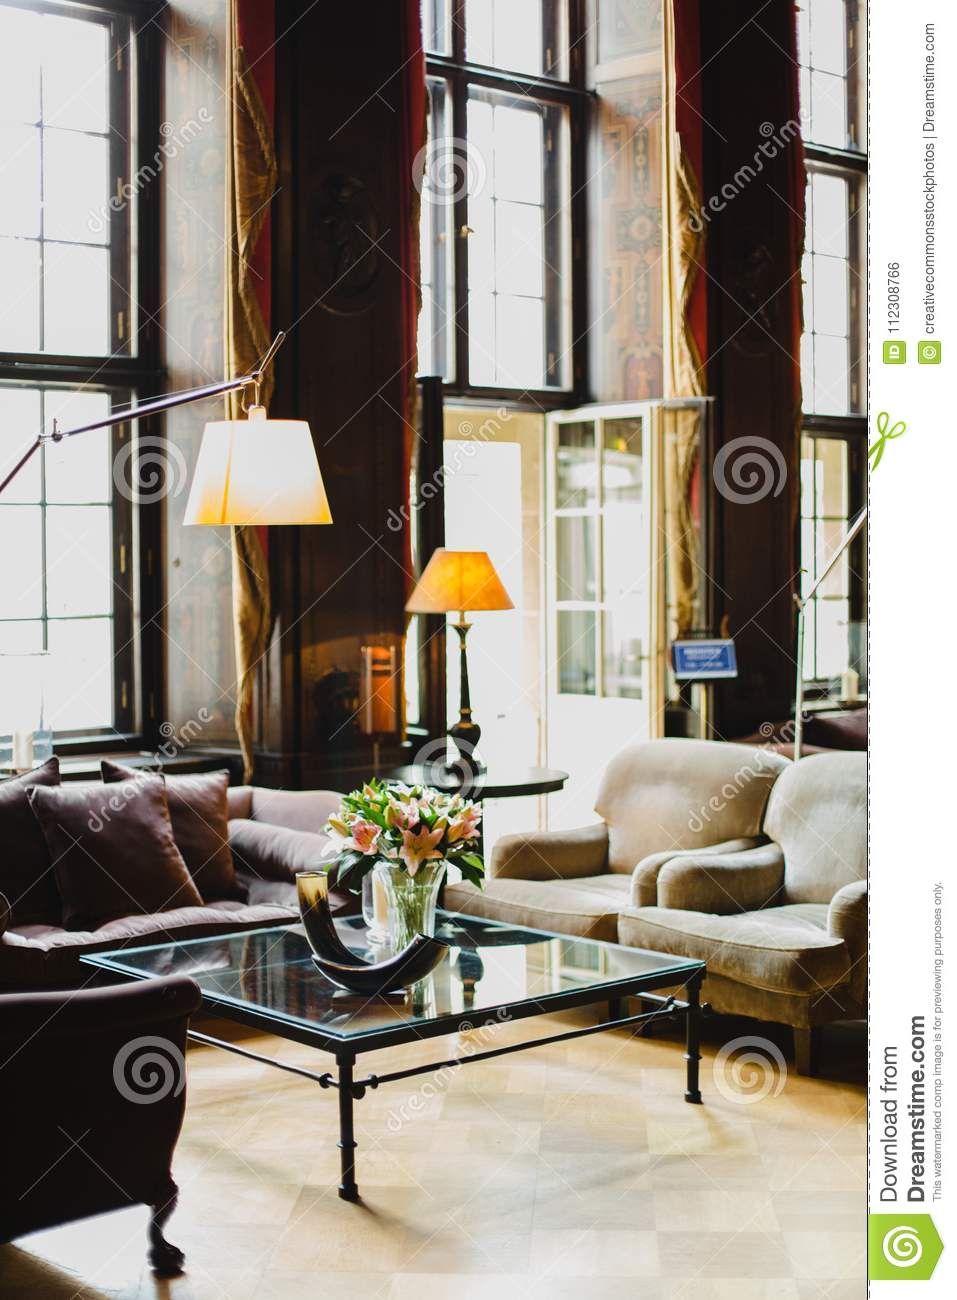 - Square Glass-top Coffee Table Picture. Image: 112308766